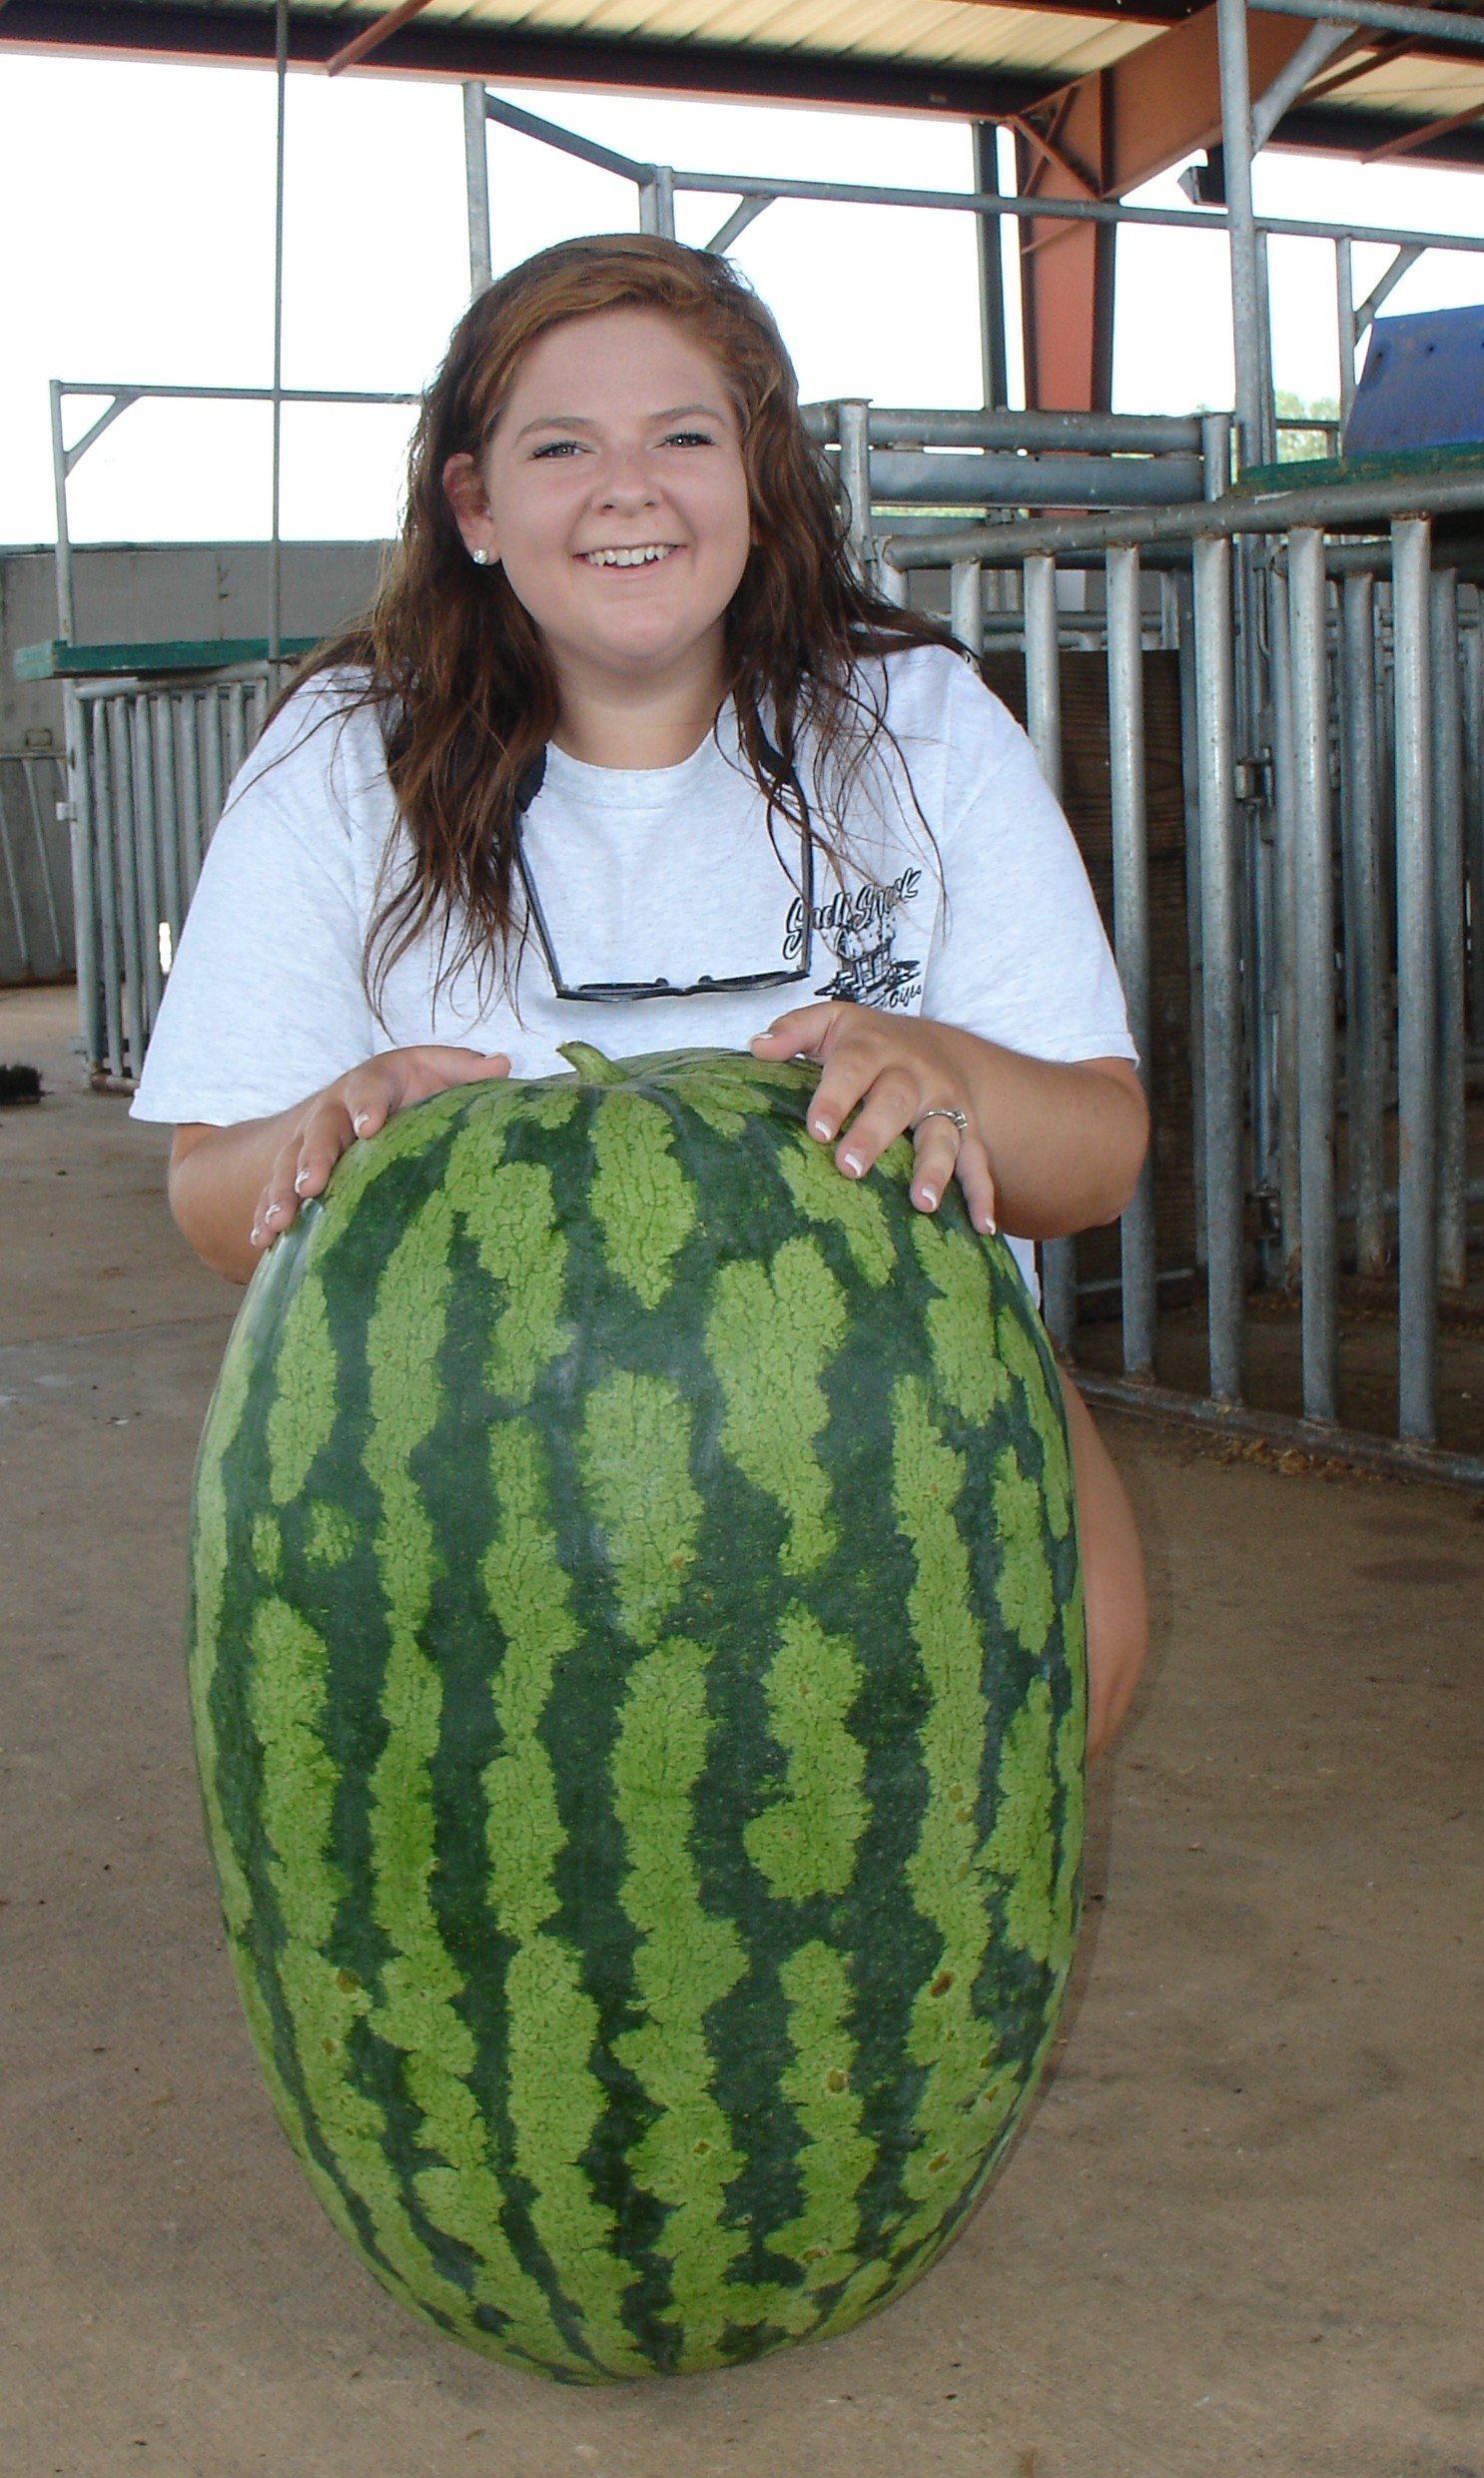 Kellee Alday won third place in 2015 in the Georgia 4-H Watermelon Growing Contest. Her melon weighed in at 109-pounds.